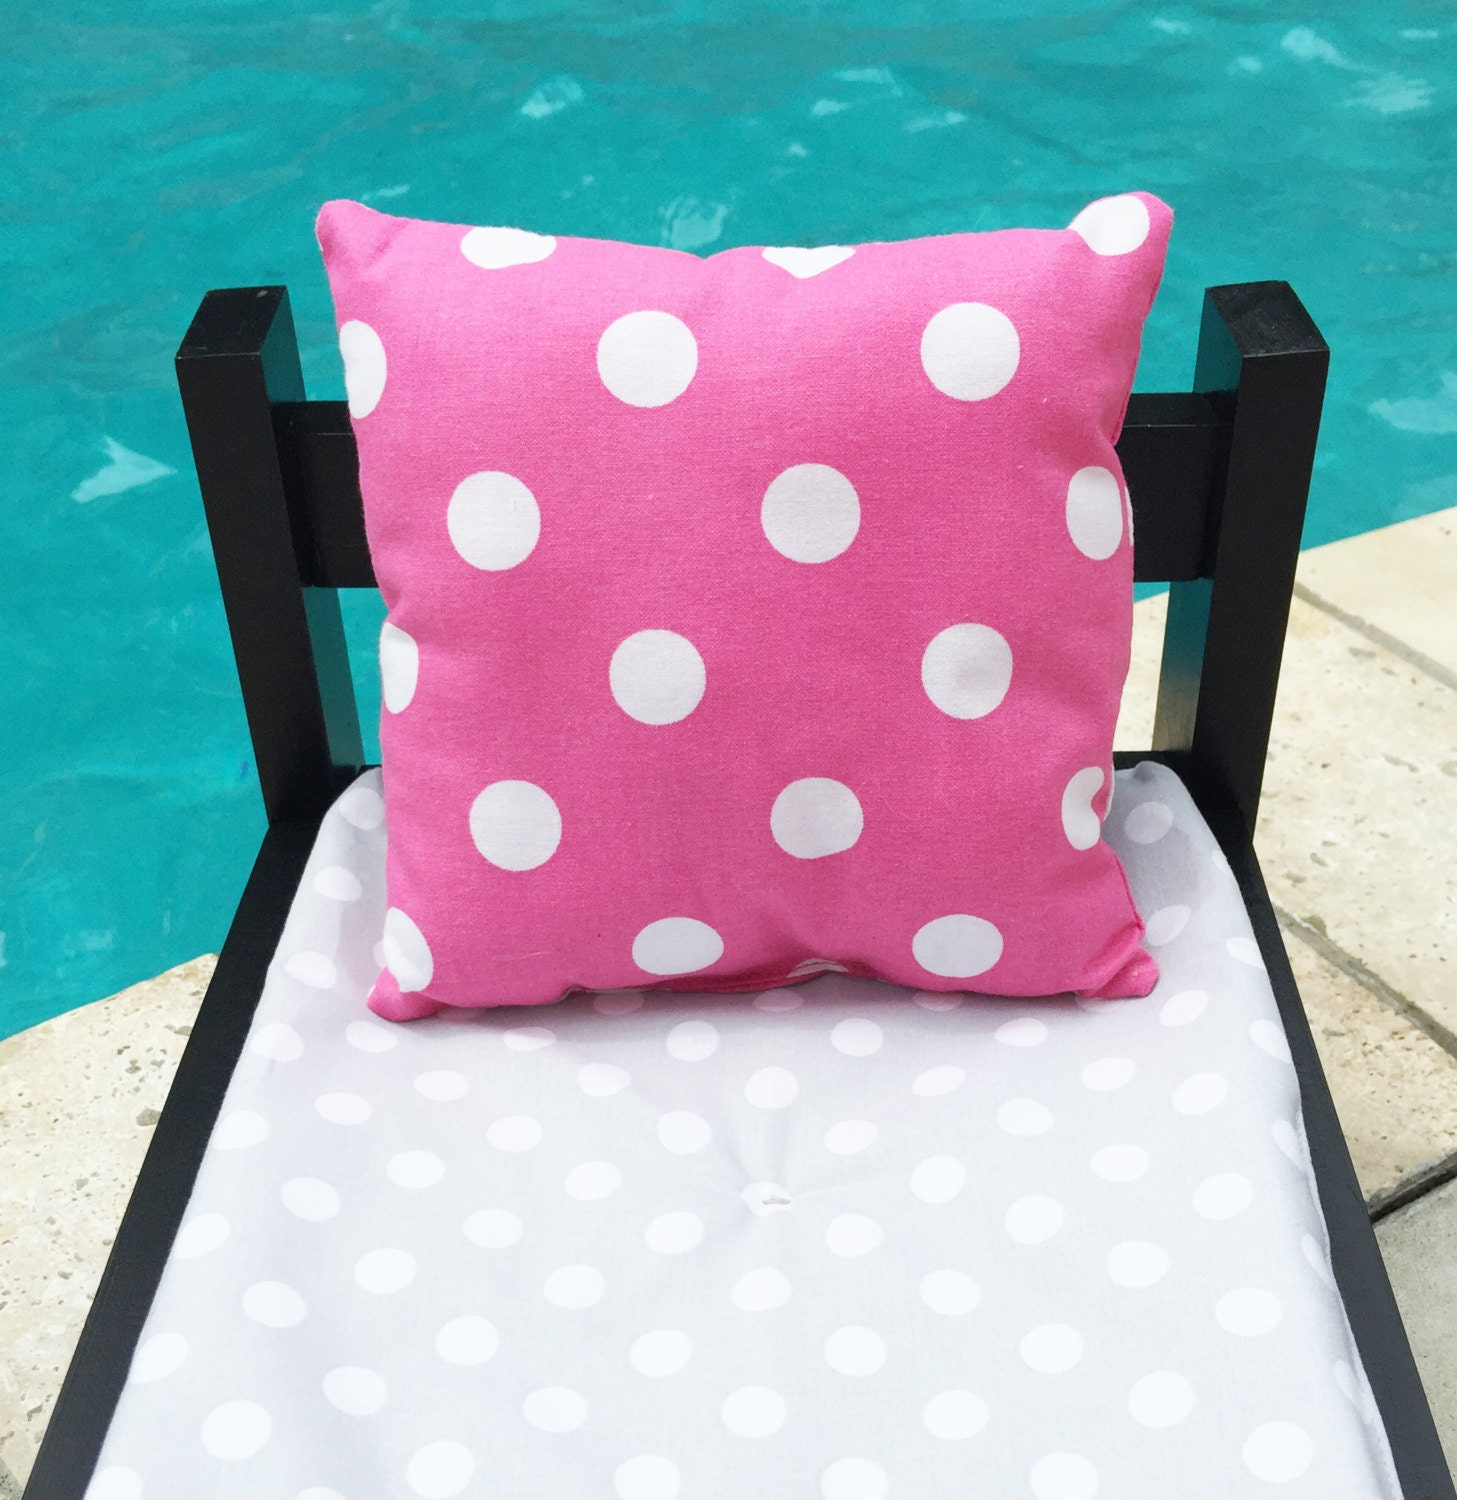 How To Make A Doll Decorative Pillow : Doll Pillows 18 Inch Doll Pillows Doll Throw Pills Pink